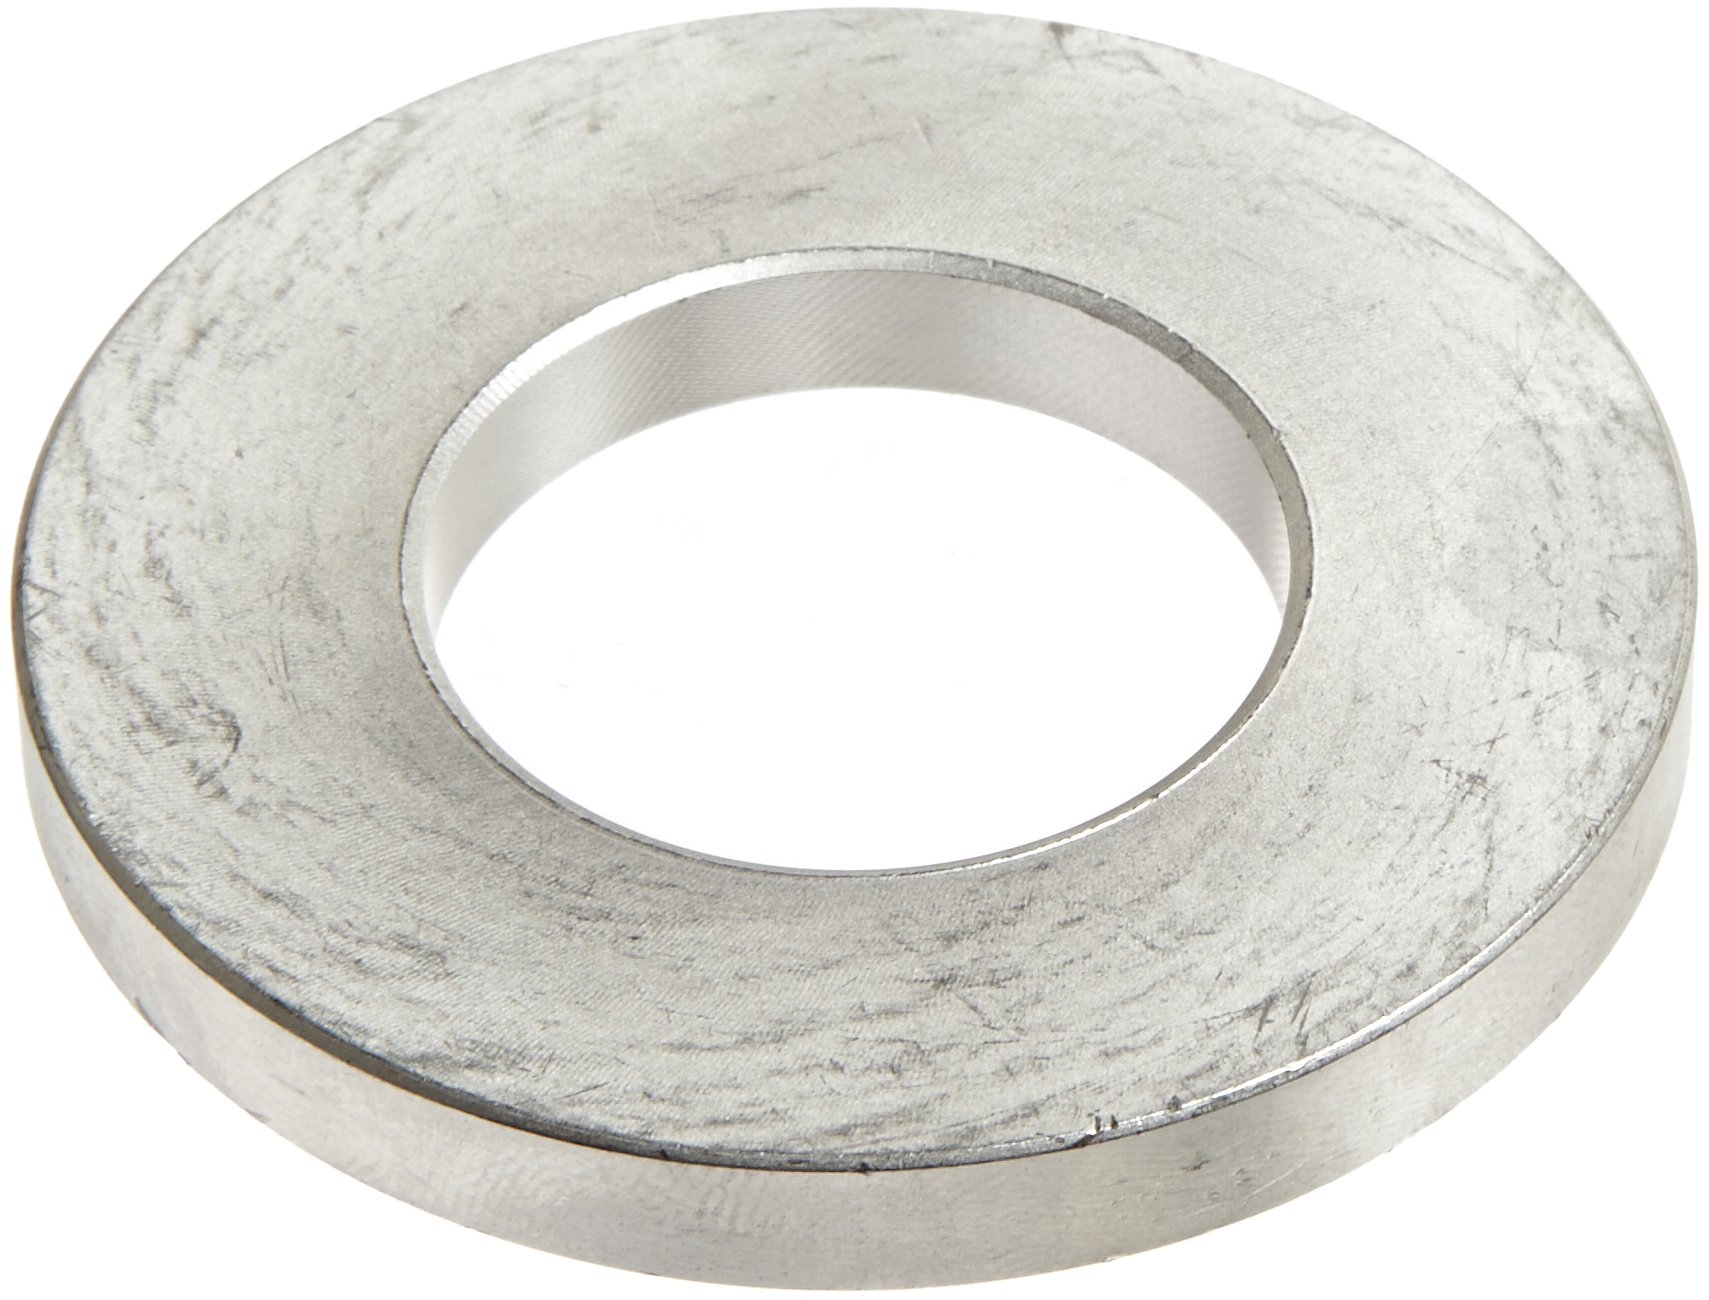 303 Stainless Steel Flat Washer, #10 Hole Size, 1-9/32'' ID, 2-1/2'' OD, 9/32'' Nominal Thickness, Made in US (Pack of 2)